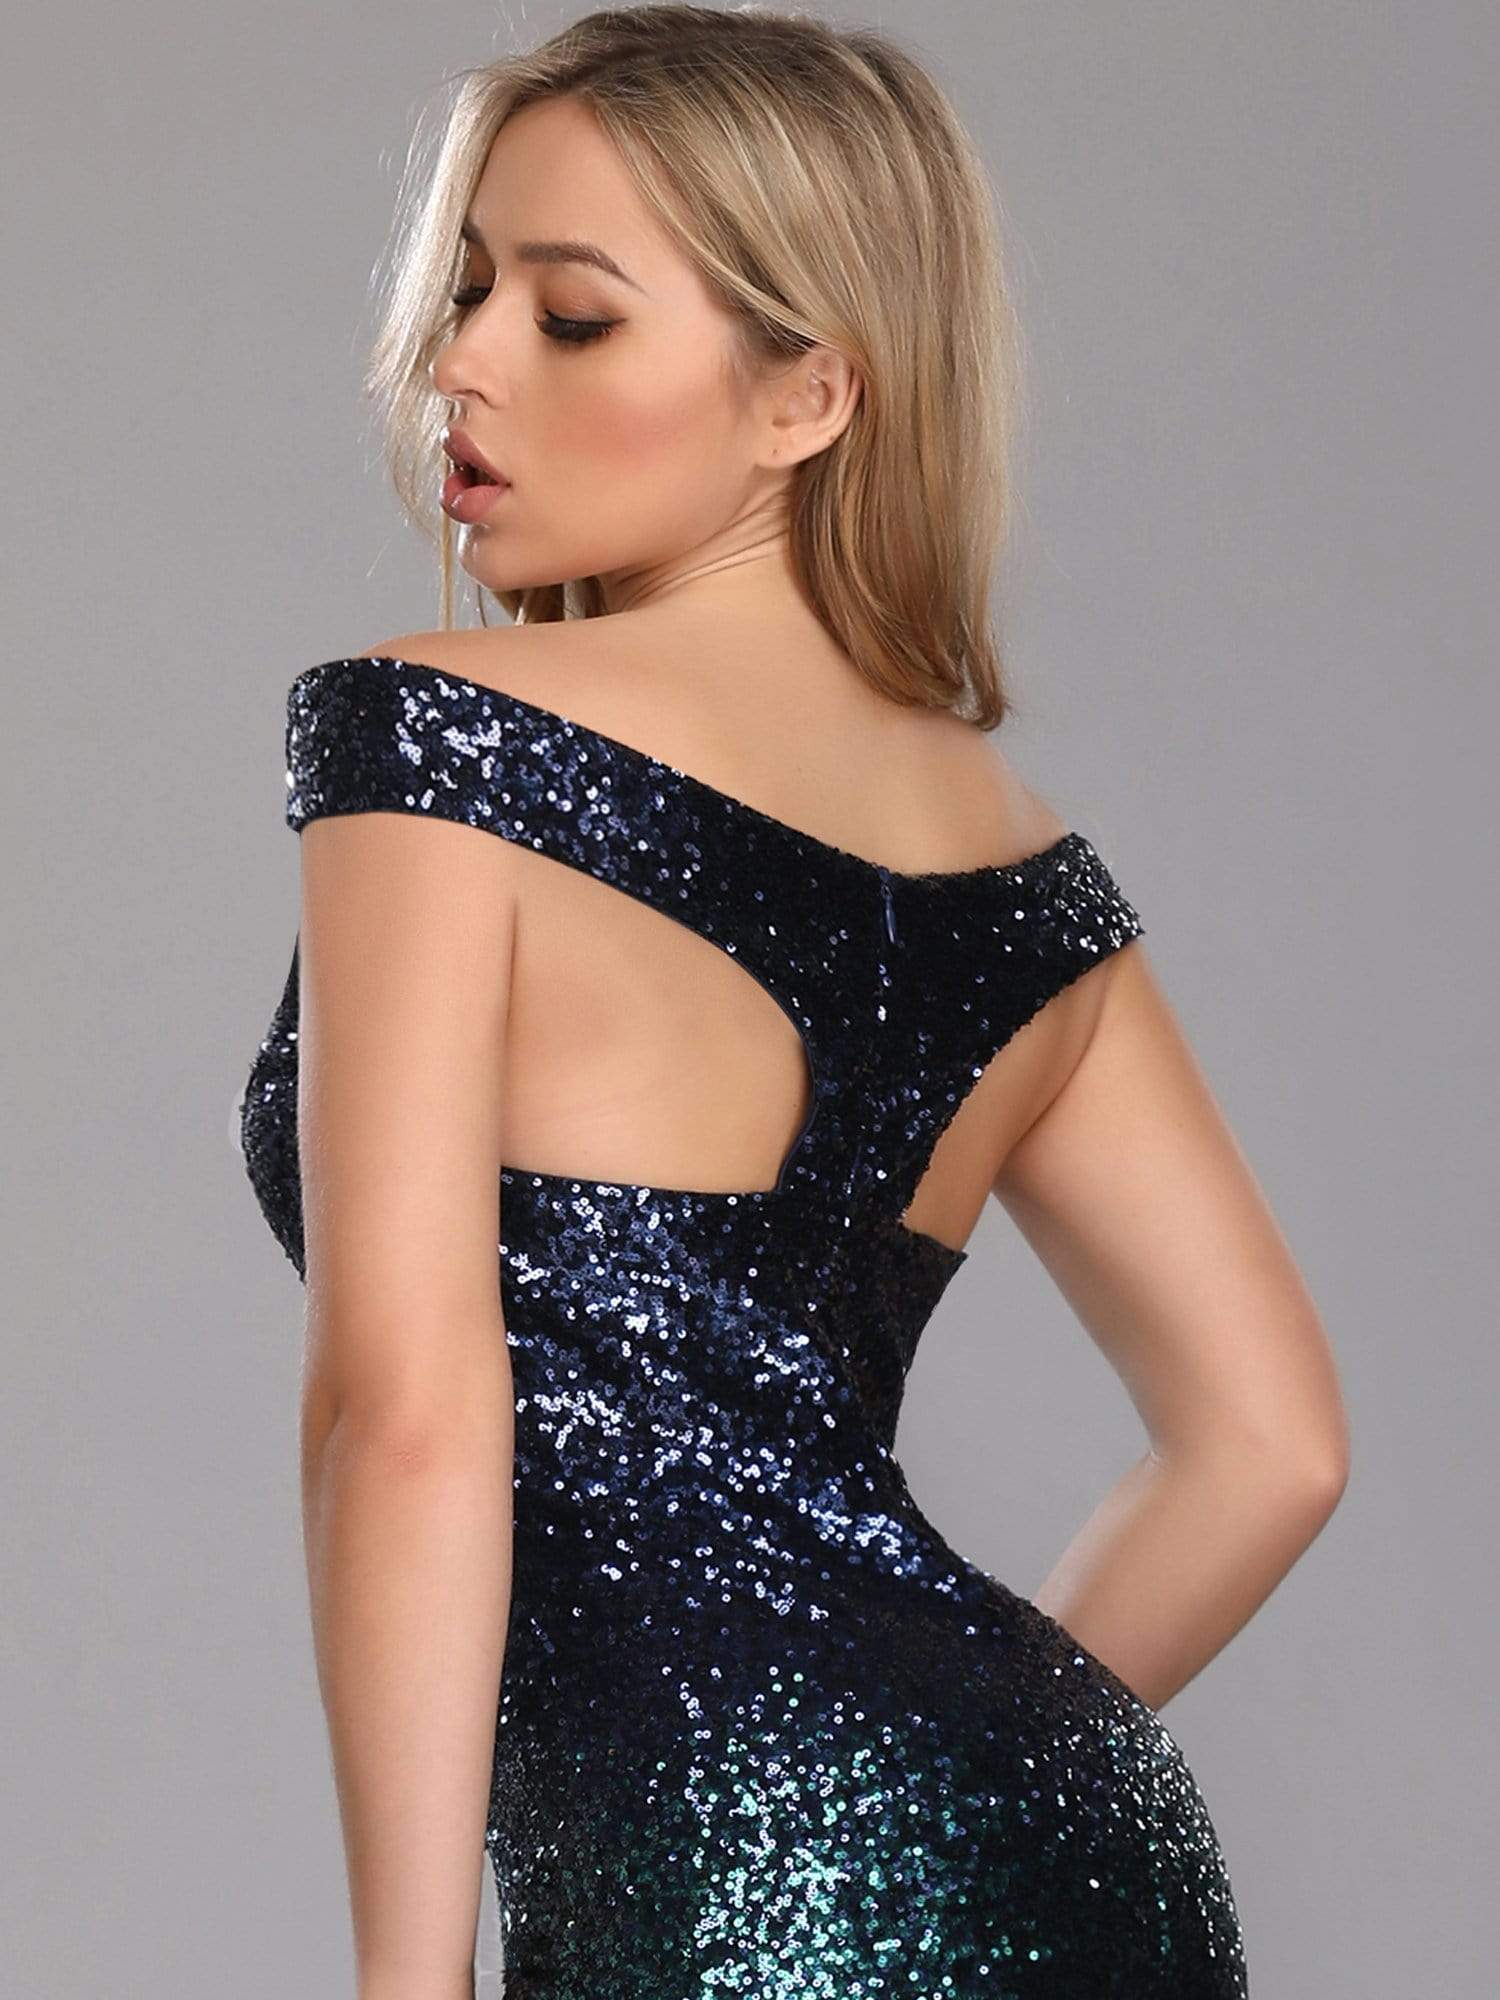 Evening Gowns for Women Fishtail Sequin Off the Shoulder - Ever Pretty AU